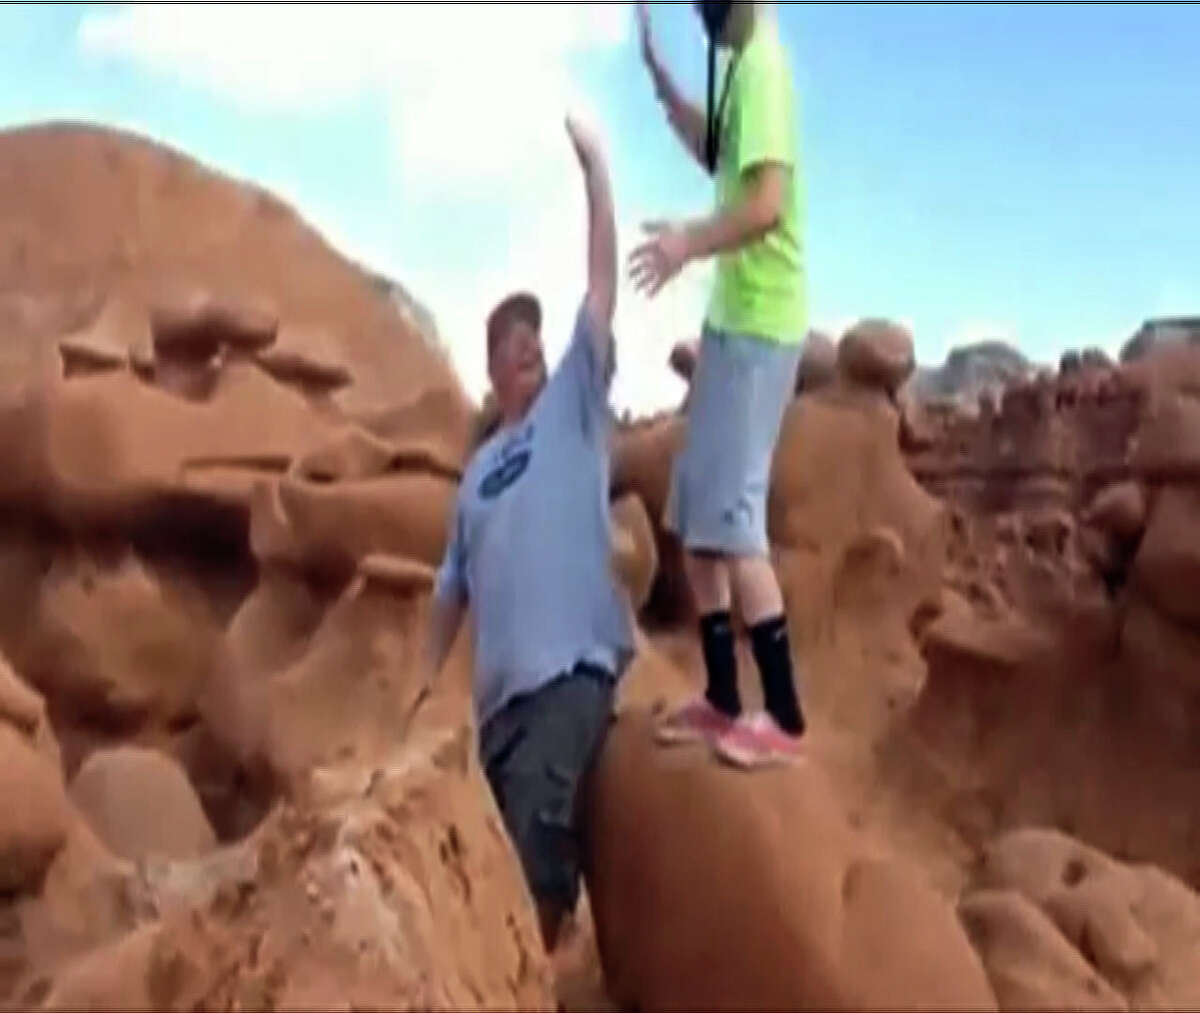 Two Utah men removed from their Boy Scout leadership positions after the viral video showed them toppling an ancient rock formation pleaded guilty to misdemeanor charges Tuesday, March 18, 2014, and avoided jail time. Glenn Taylor, 45, and David Hall, 42, appeared in Utah's 7th District Court to enter their pleas under a deal with prosecutors. The two men from Highland were sentenced to a year of probation and ordered to pay fines and restitution, which has not yet been determined, The Salt Lake Tribune reported. This file frame grab from a video taken by Dave Hall shows two men cheering after a Boy Scouts leader knocked over an ancient Utah desert rock formation at Goblin Valley State Park.